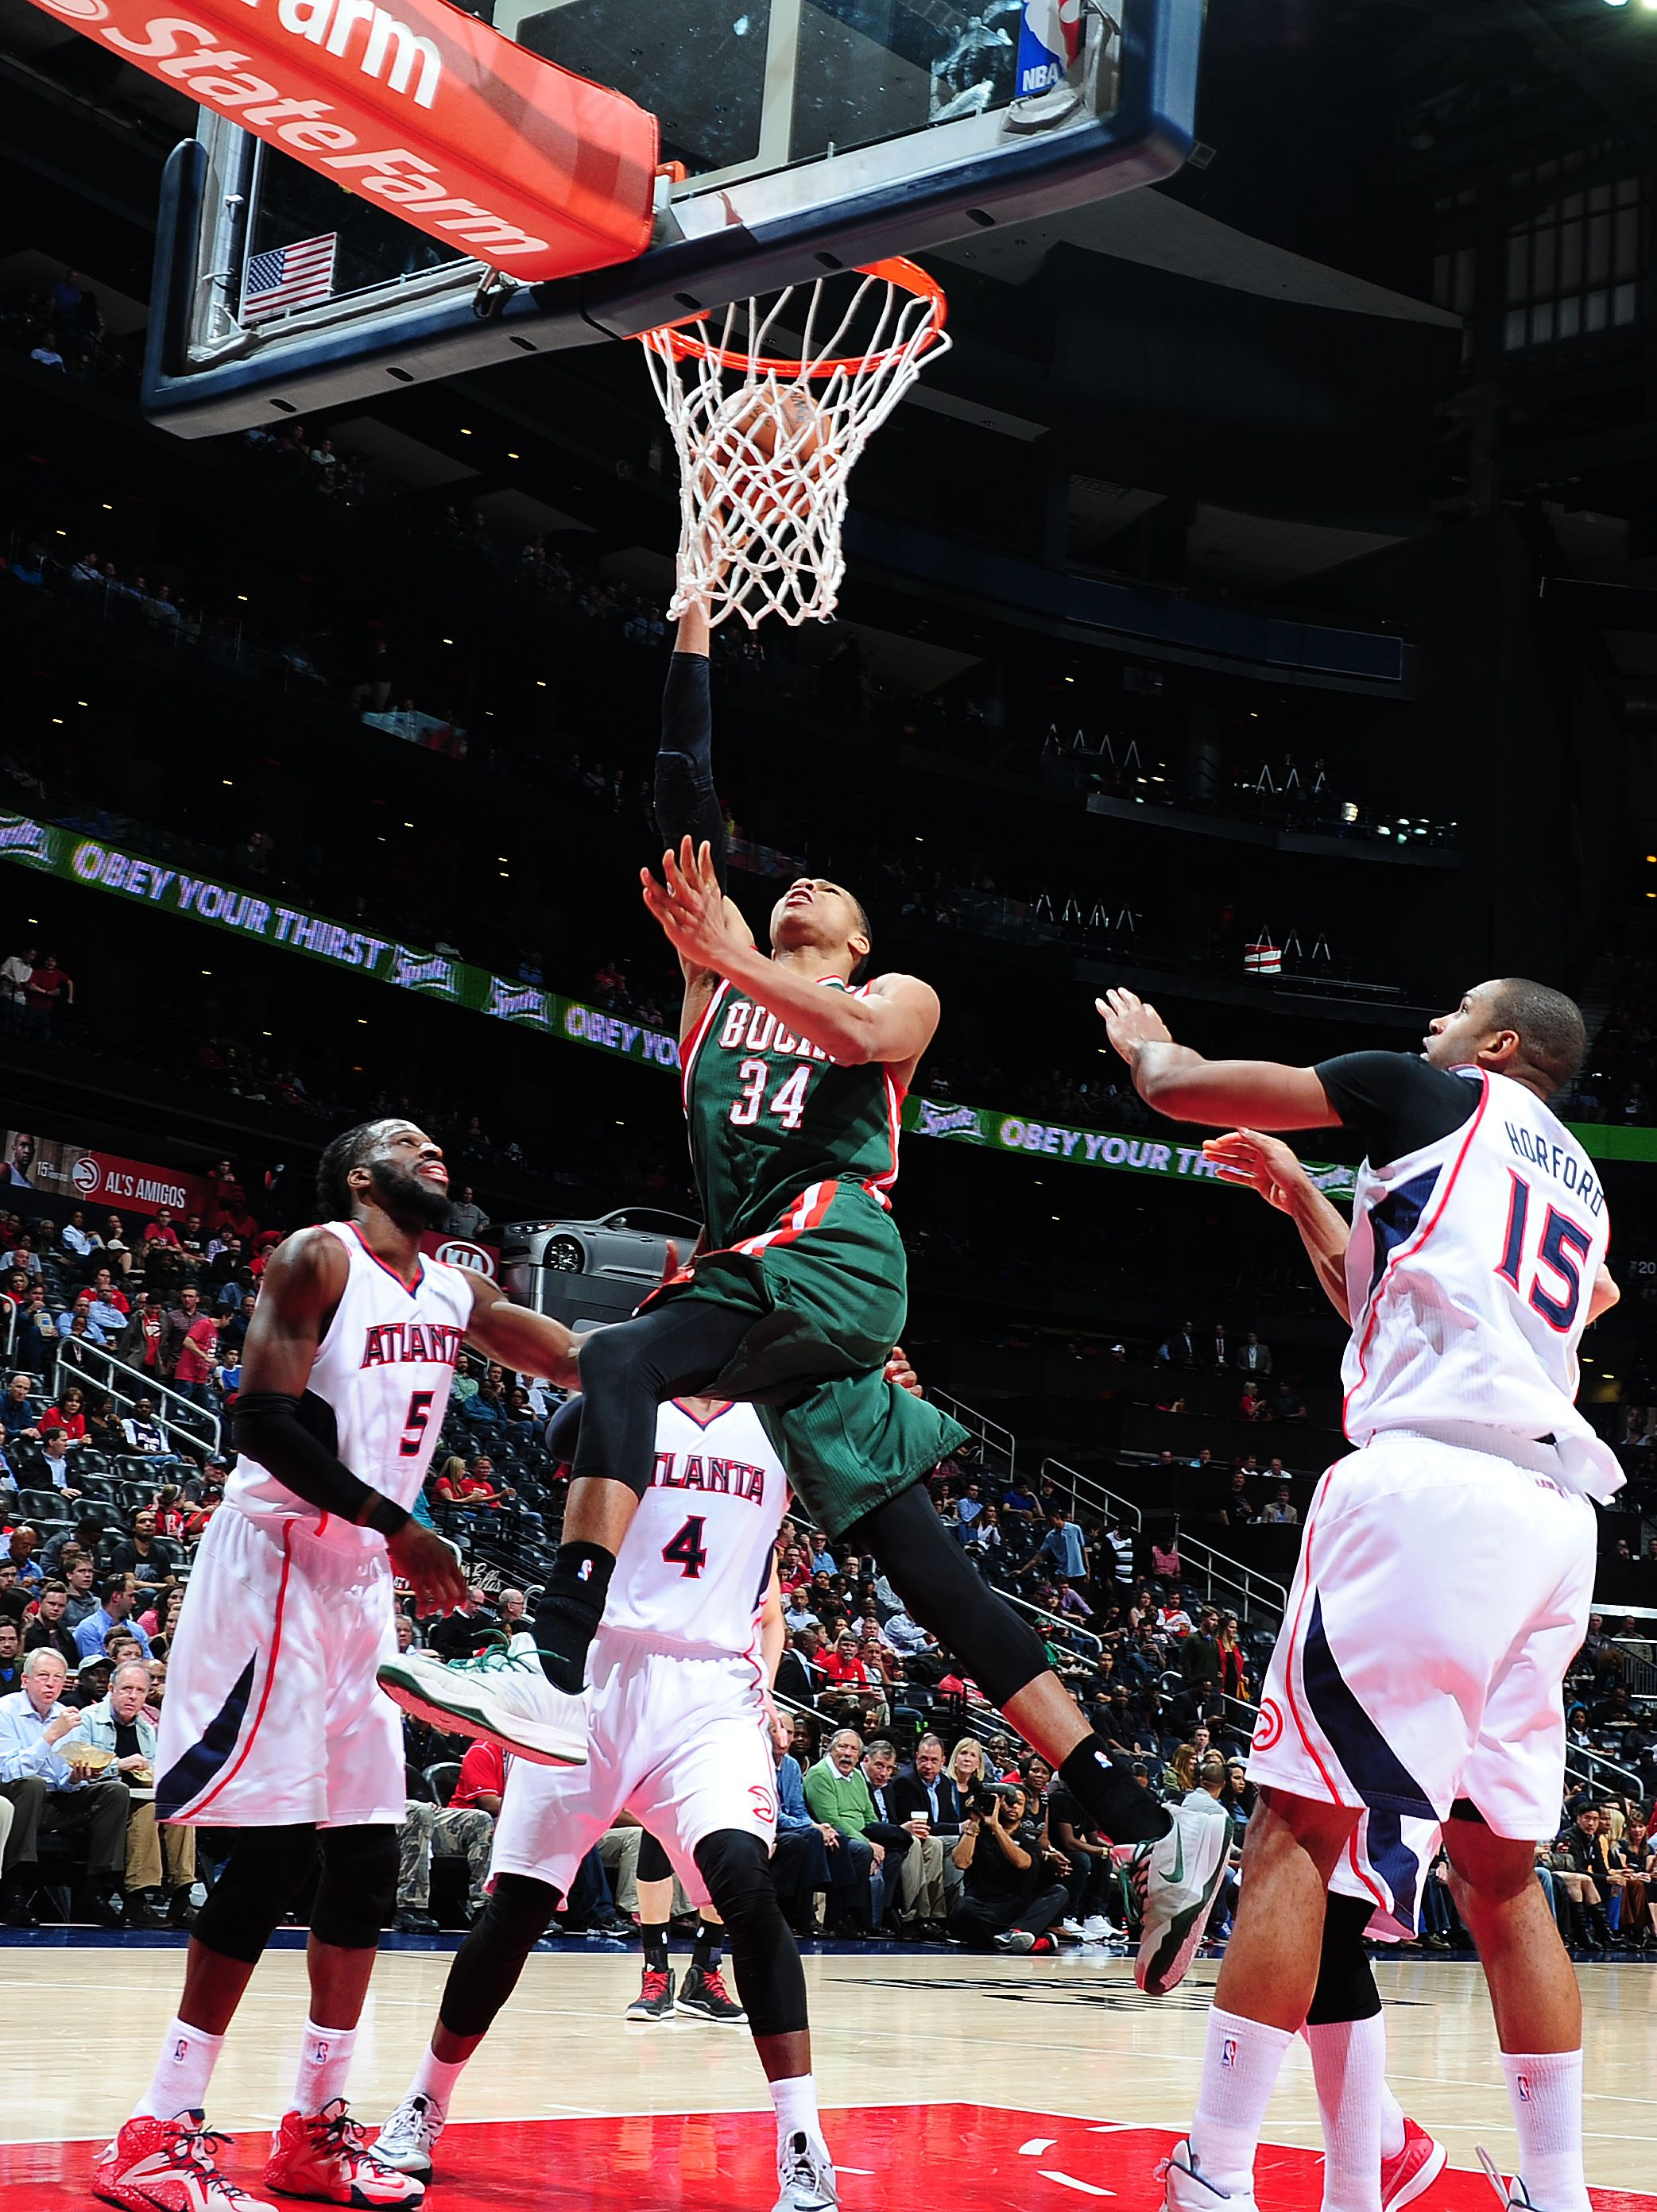 giannis antetokounmpo 34 and nate wolters of the milwaukee